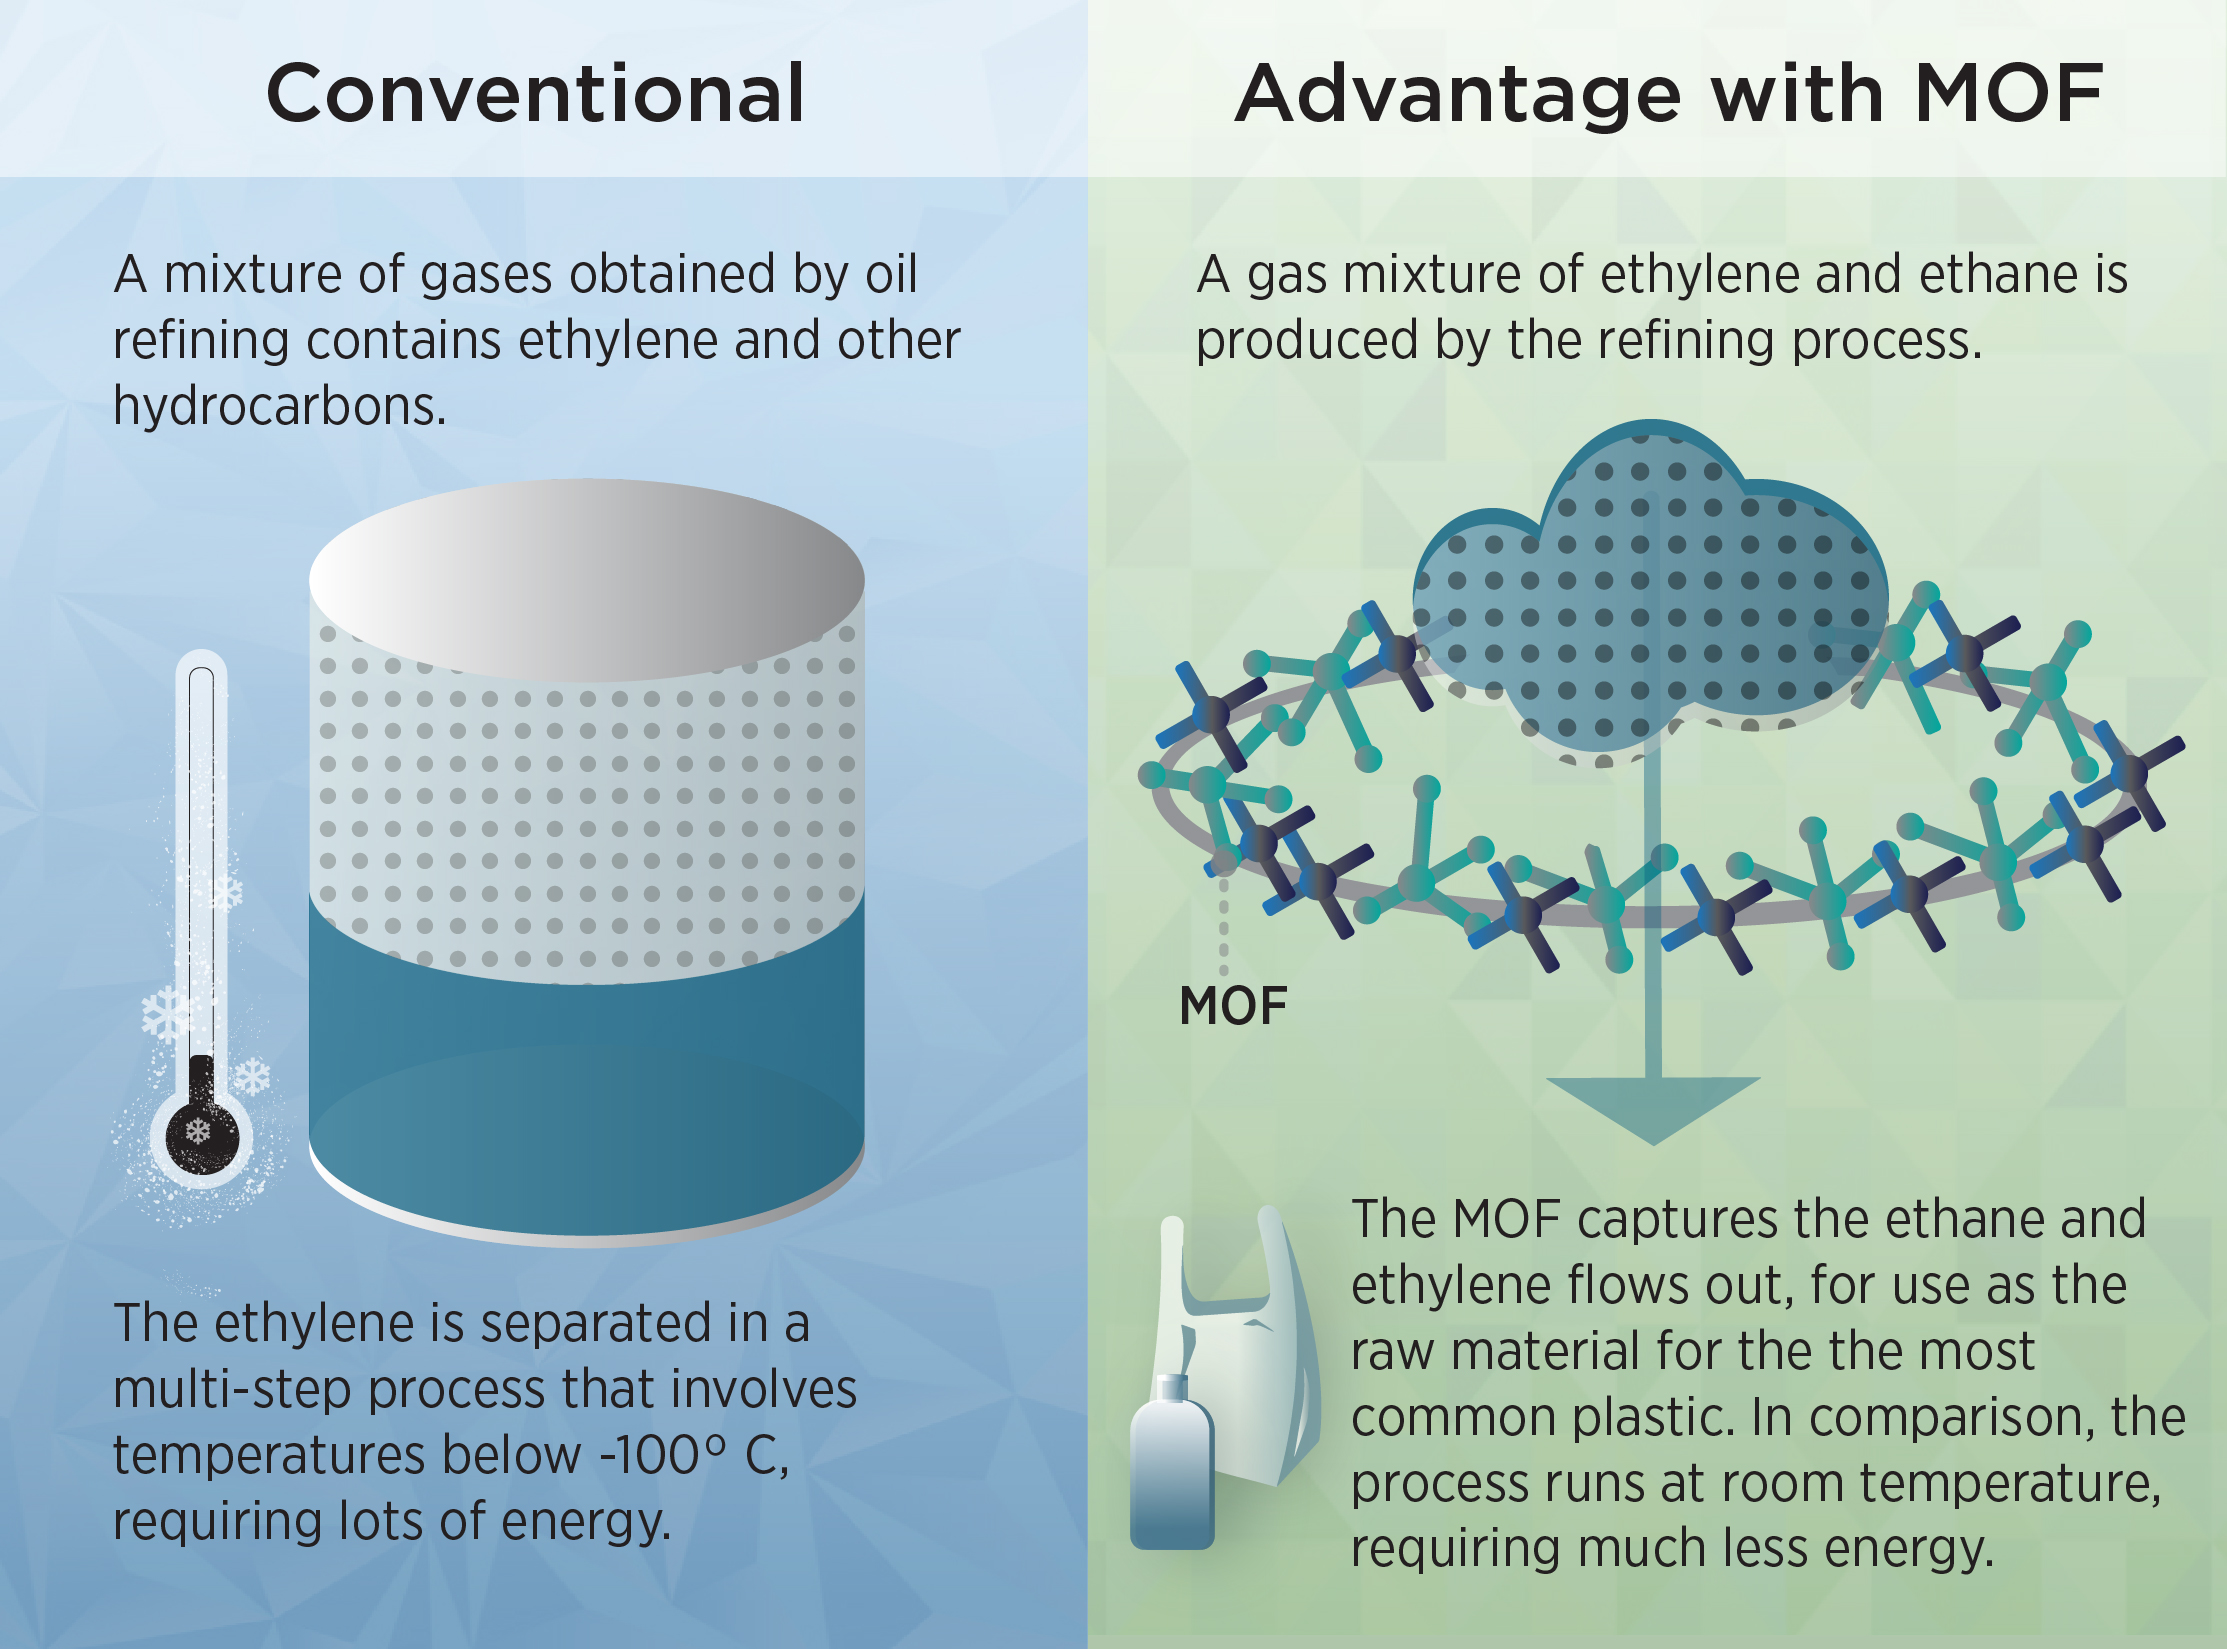 left: illustration of traditional ethylene extraction. Graphic shows a cold thermometer. right: illustration showing use of MOFs